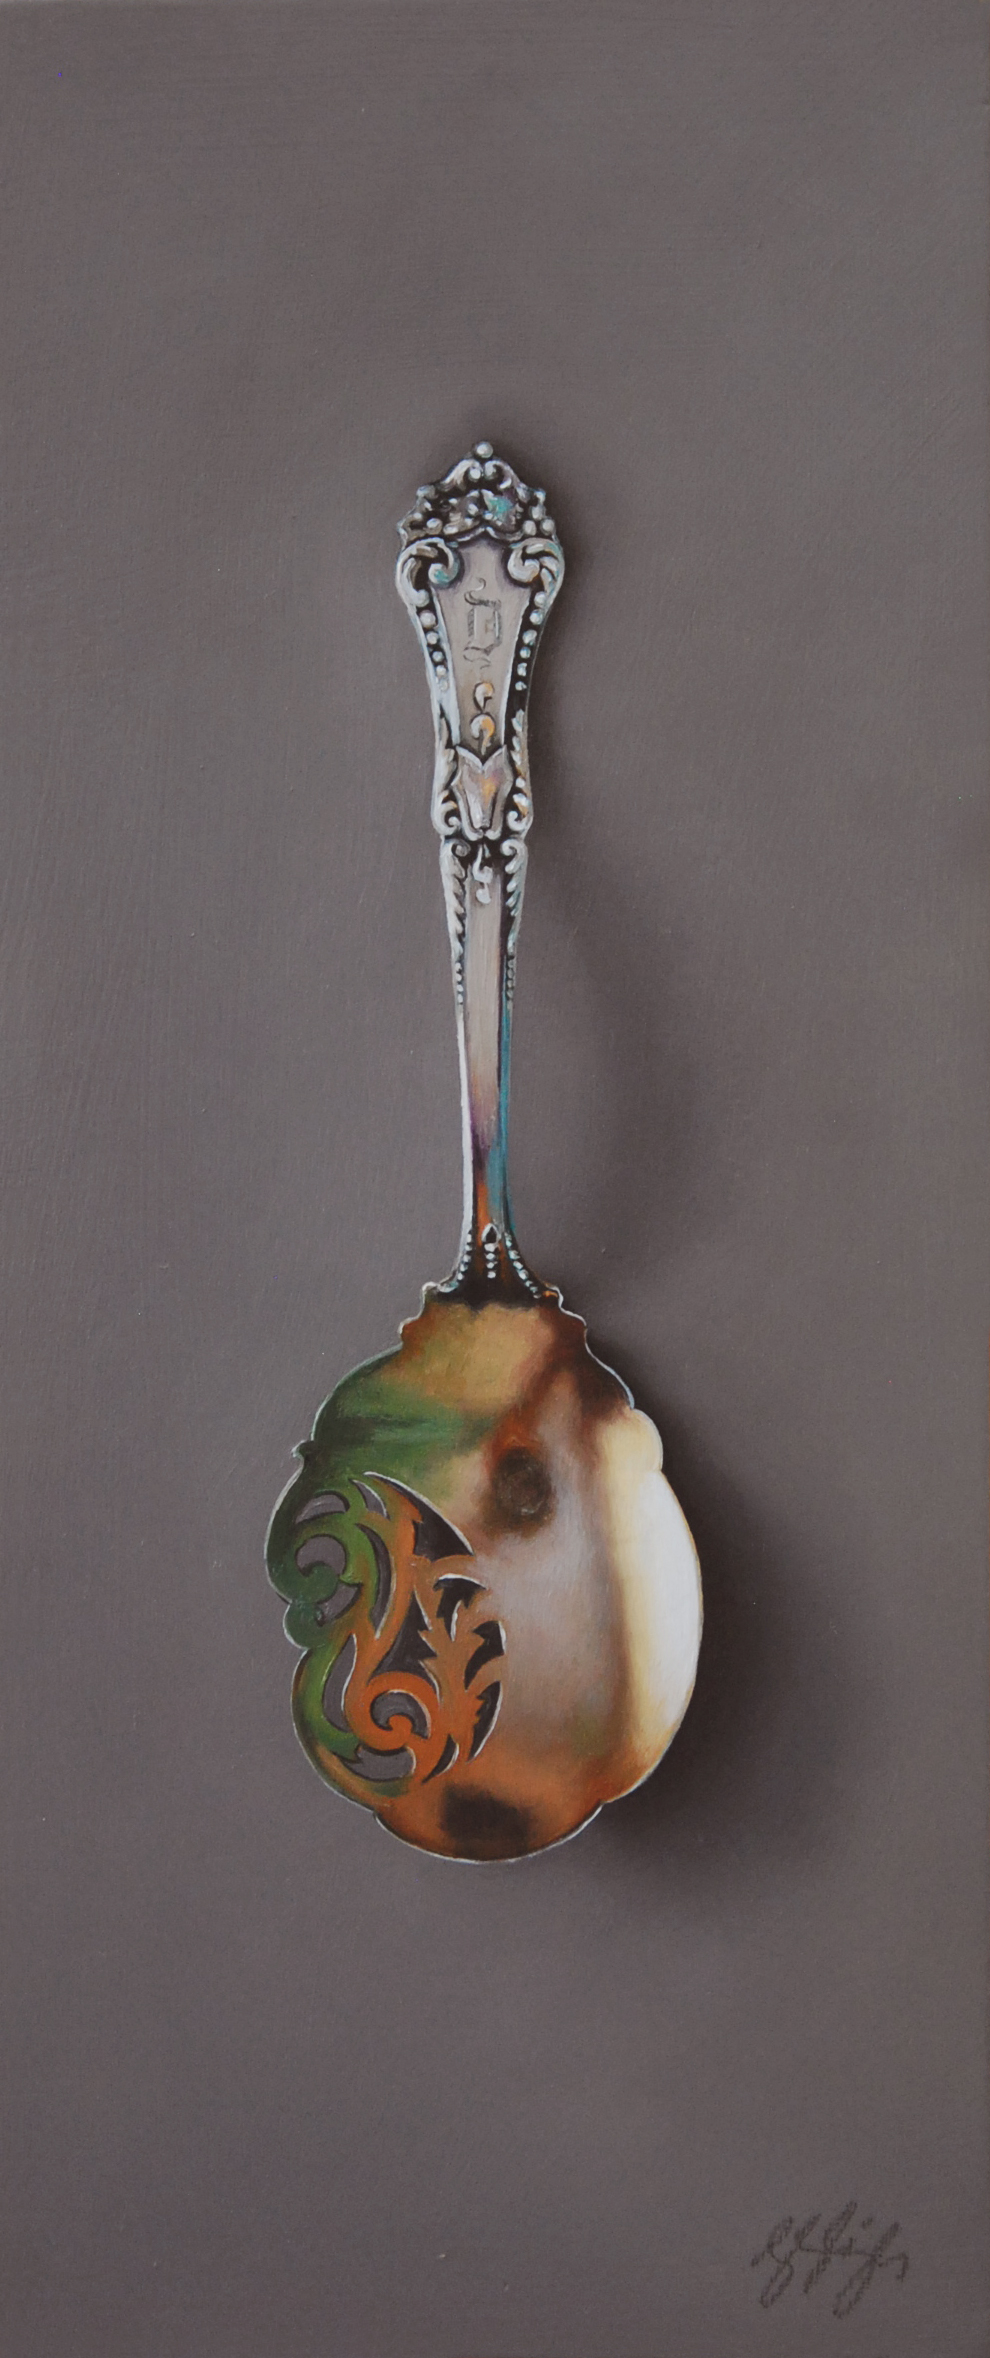 "Silver Spoon #107, The Goddess  Oil on panel, 2015. 12x5"" Private collection"